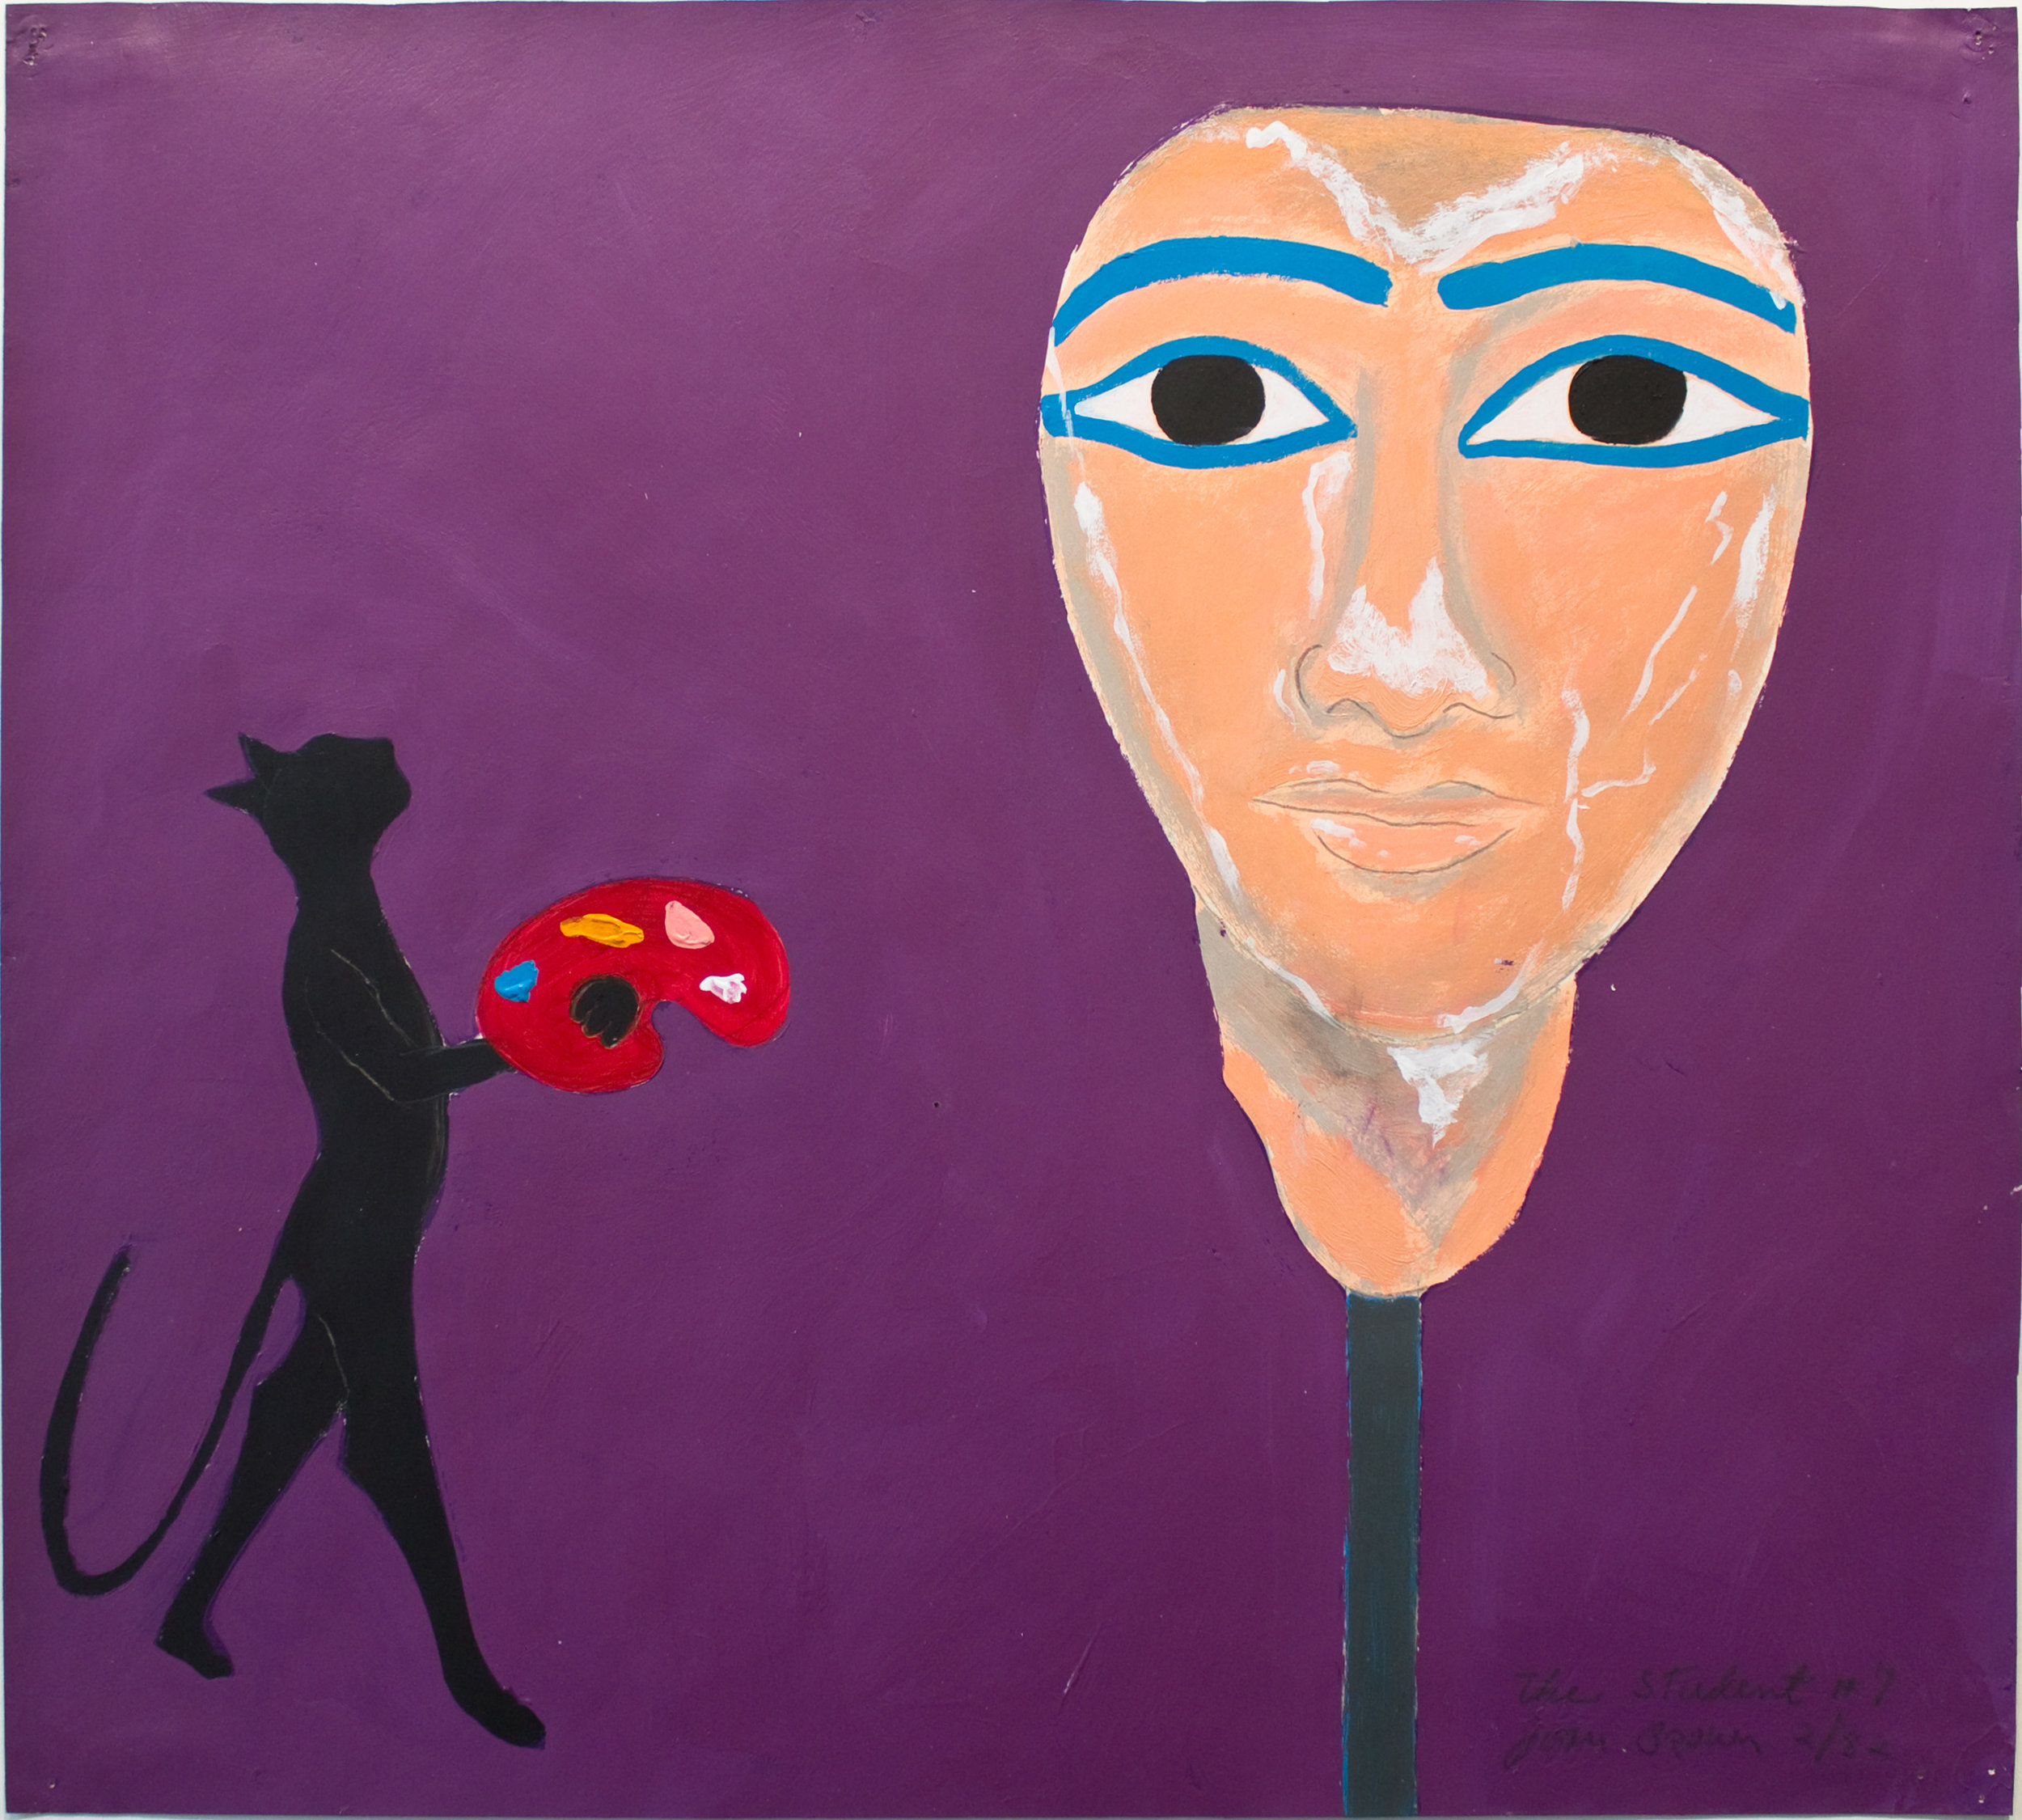 Joan Brown, The Student #7, 1982, Acrylic on paper, Suite of 8 drawings, 18 x 20 inches. © The Joan Brown Estate.